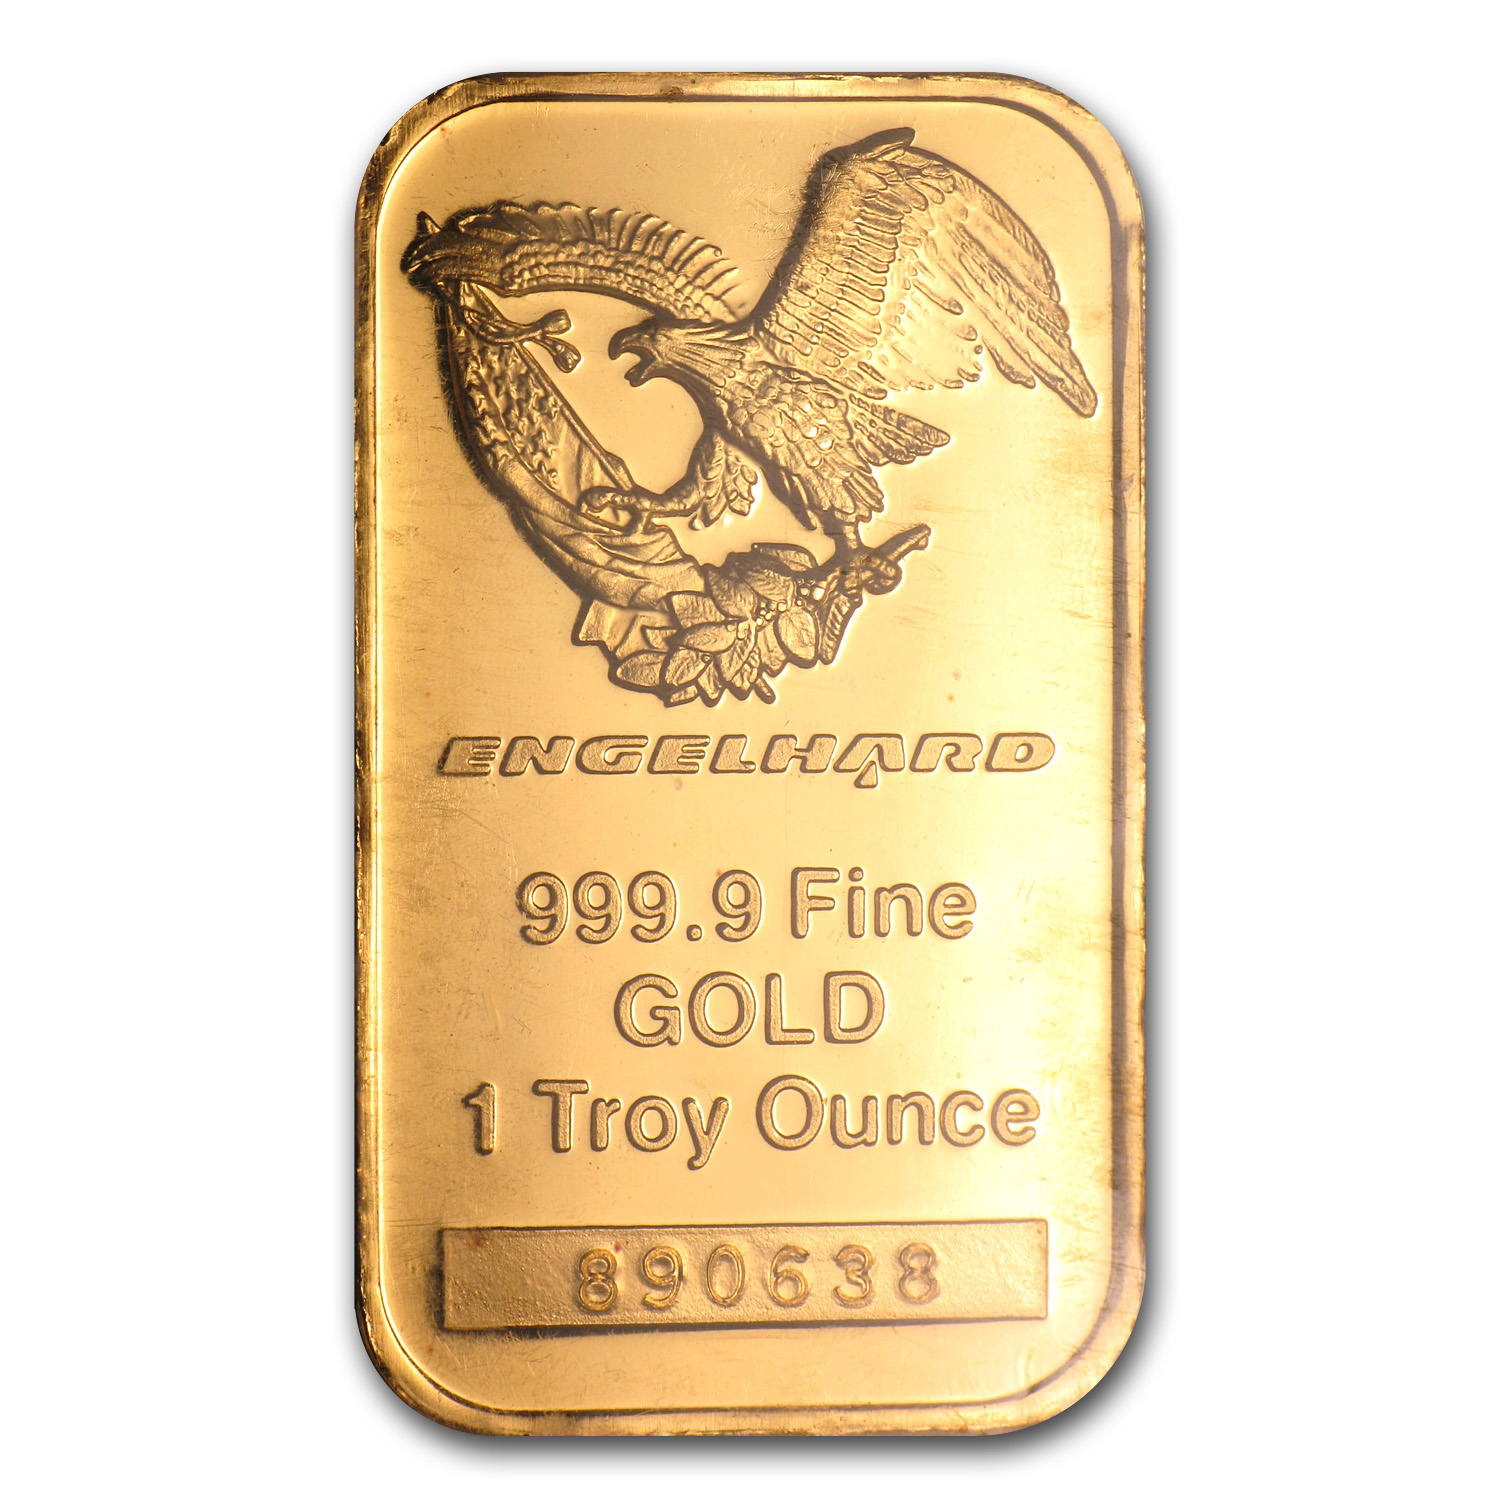 1 oz Gold Bar - Engelhard ('Eagle' logo)